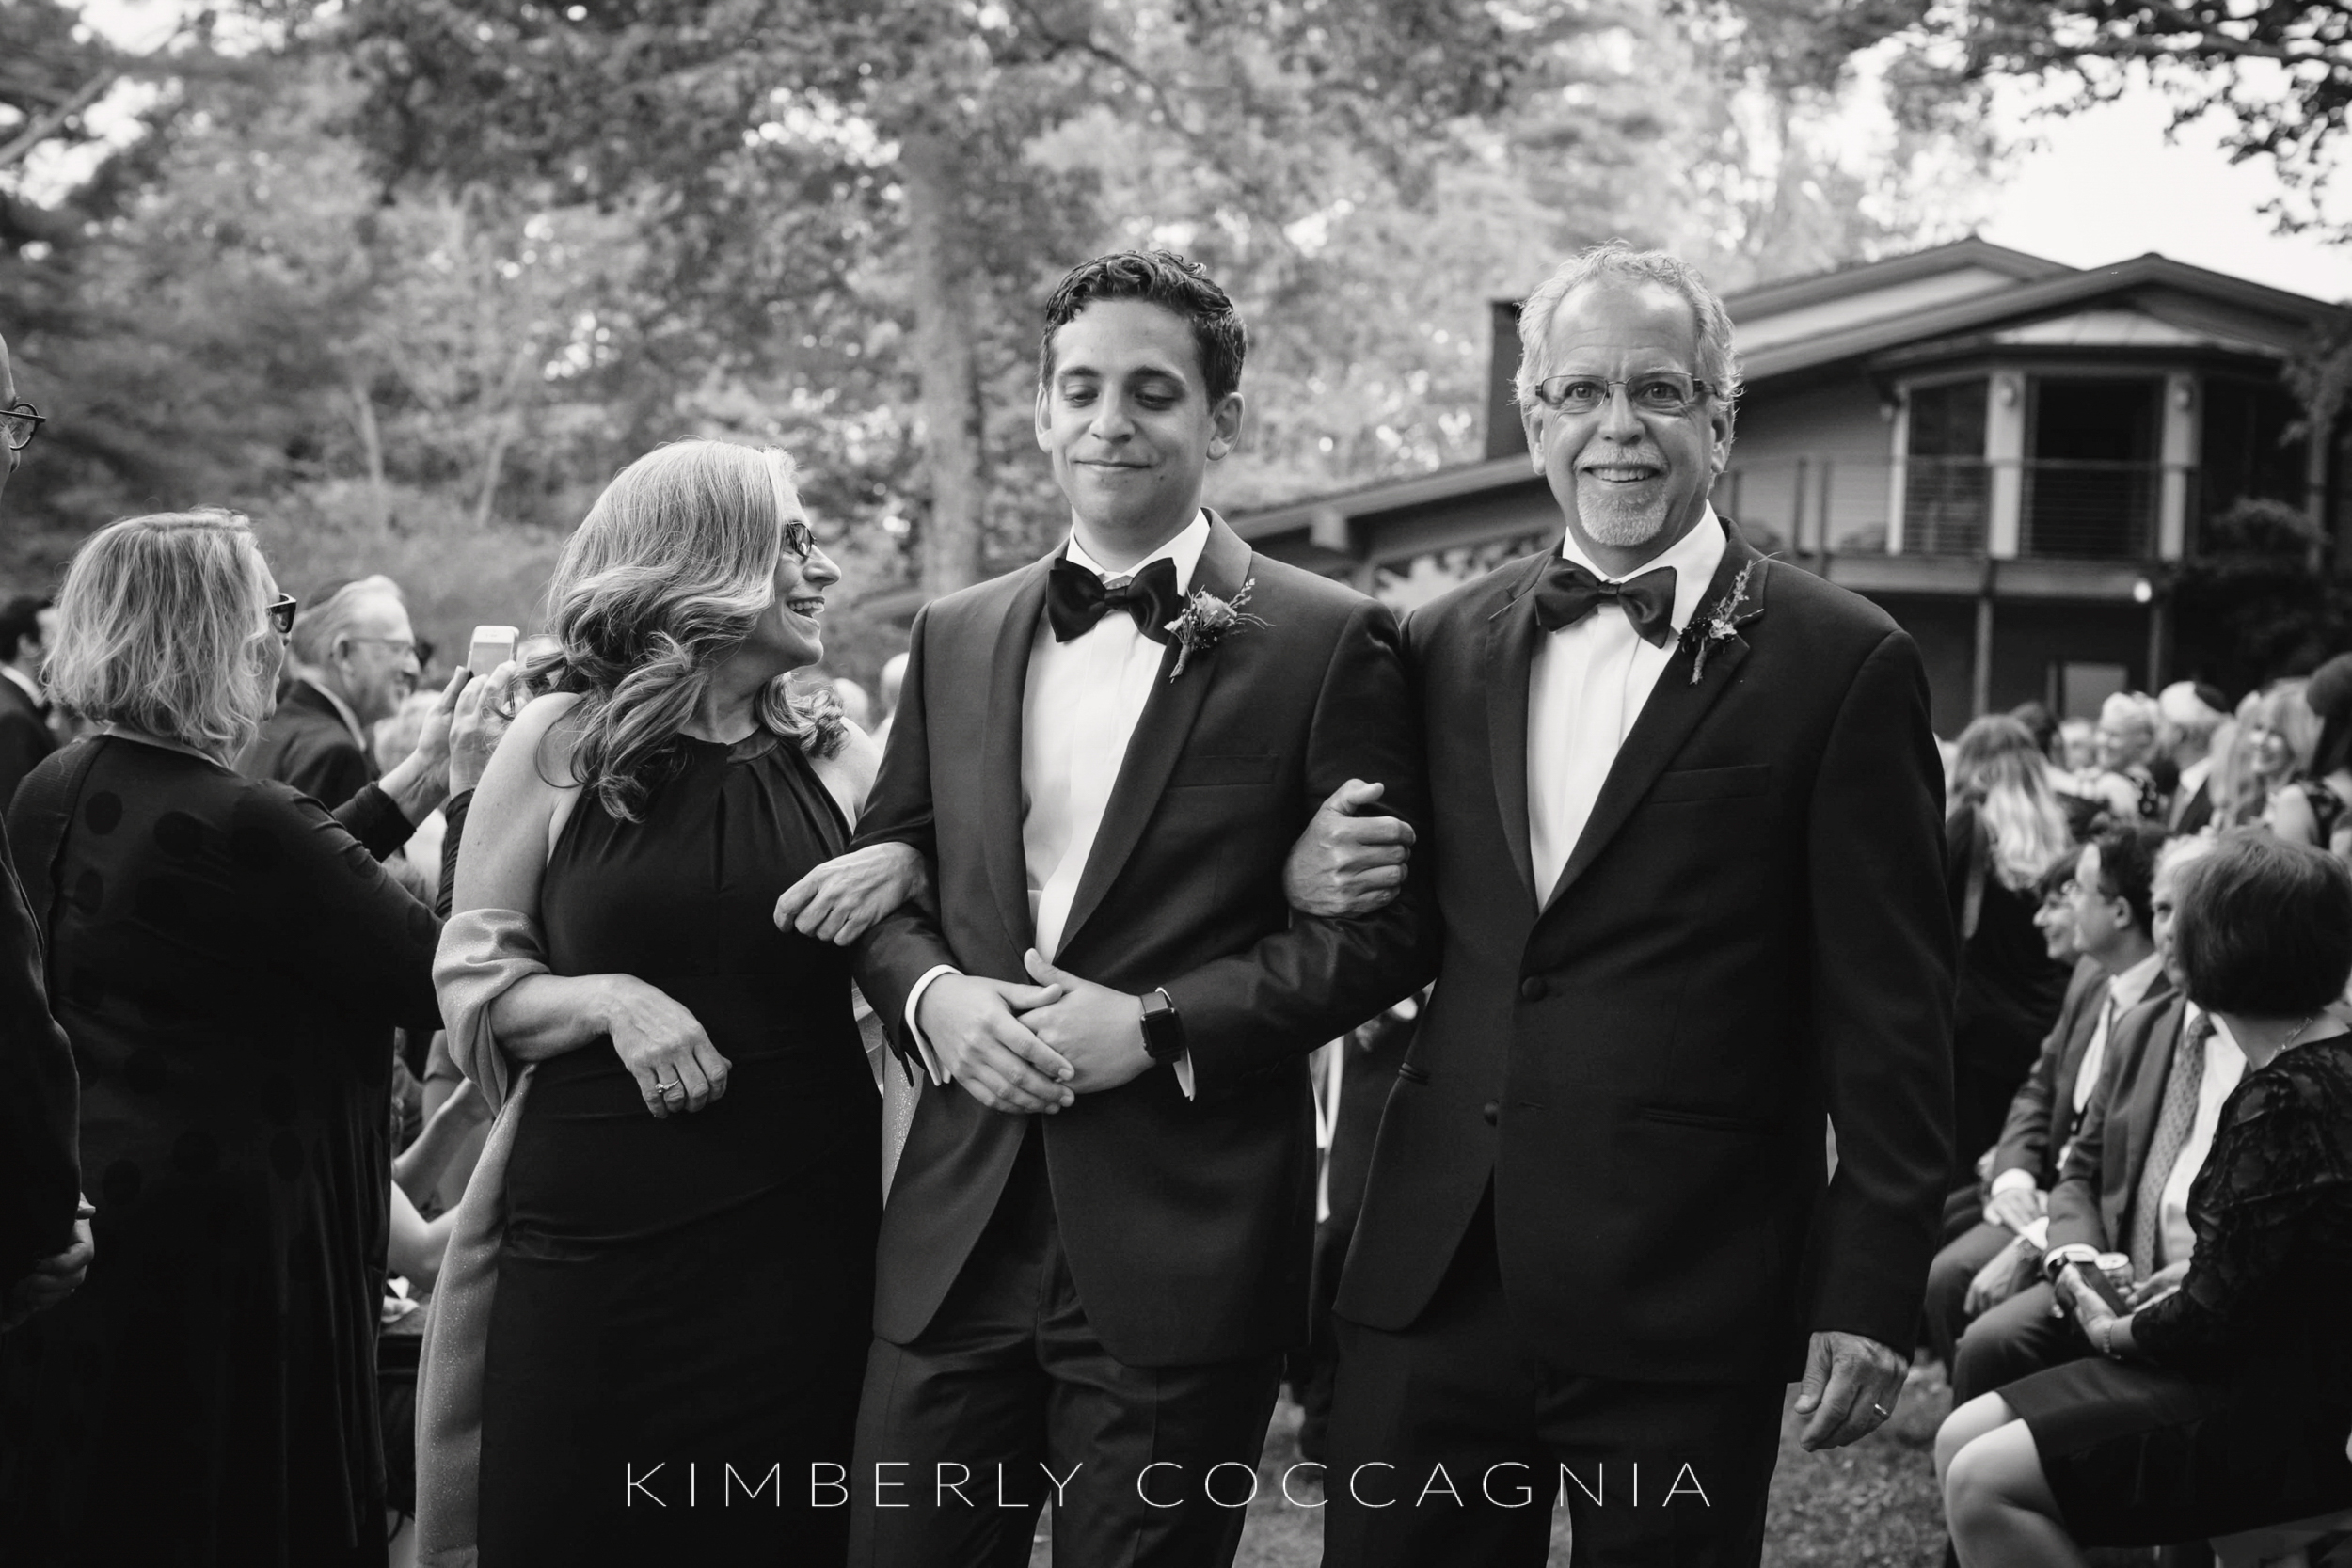 Kimberly+Coccagnia+Hudson+Valley+Wedding+Photographer-32.JPG